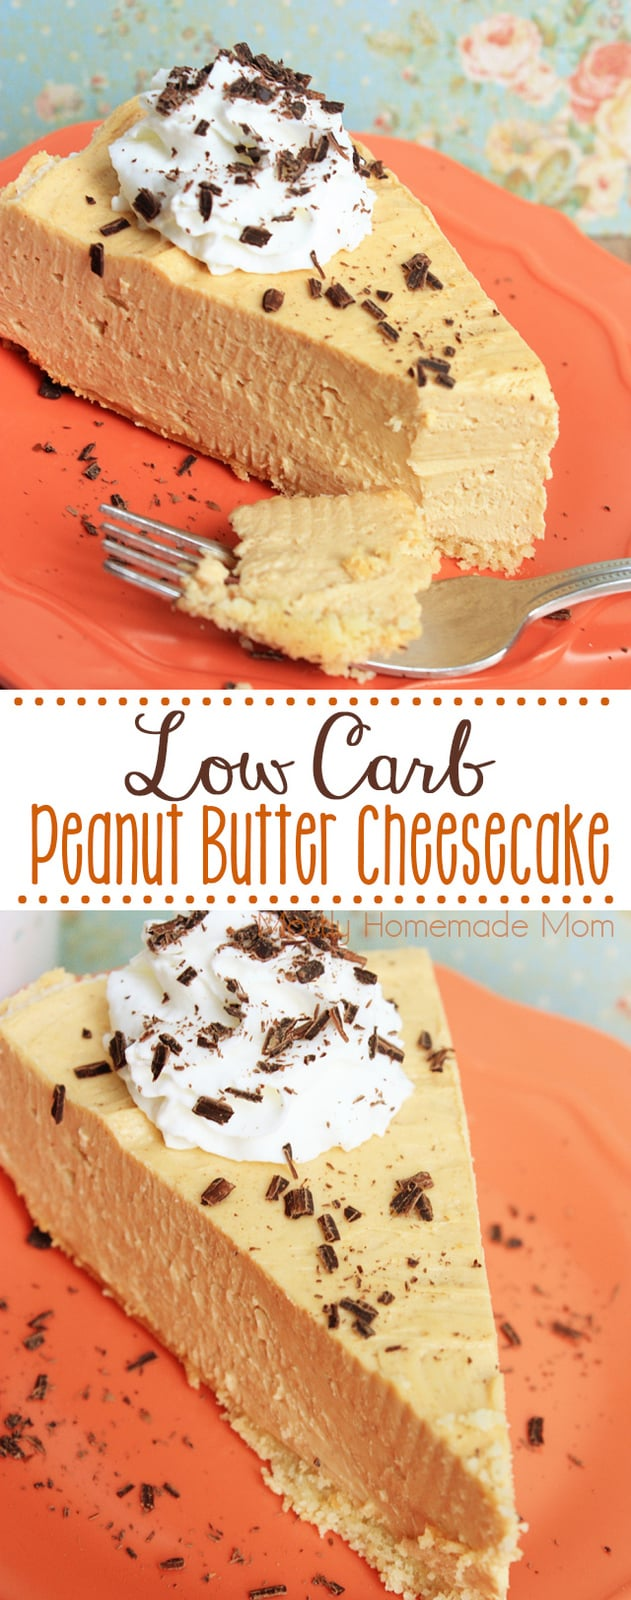 Skinny Low Carb Peanut Butter Cheesecake is virtually sugar free as well, this cheesecake will ROCK your socks off! Who knew you could lose weight eating peanut butter cheesecake?!